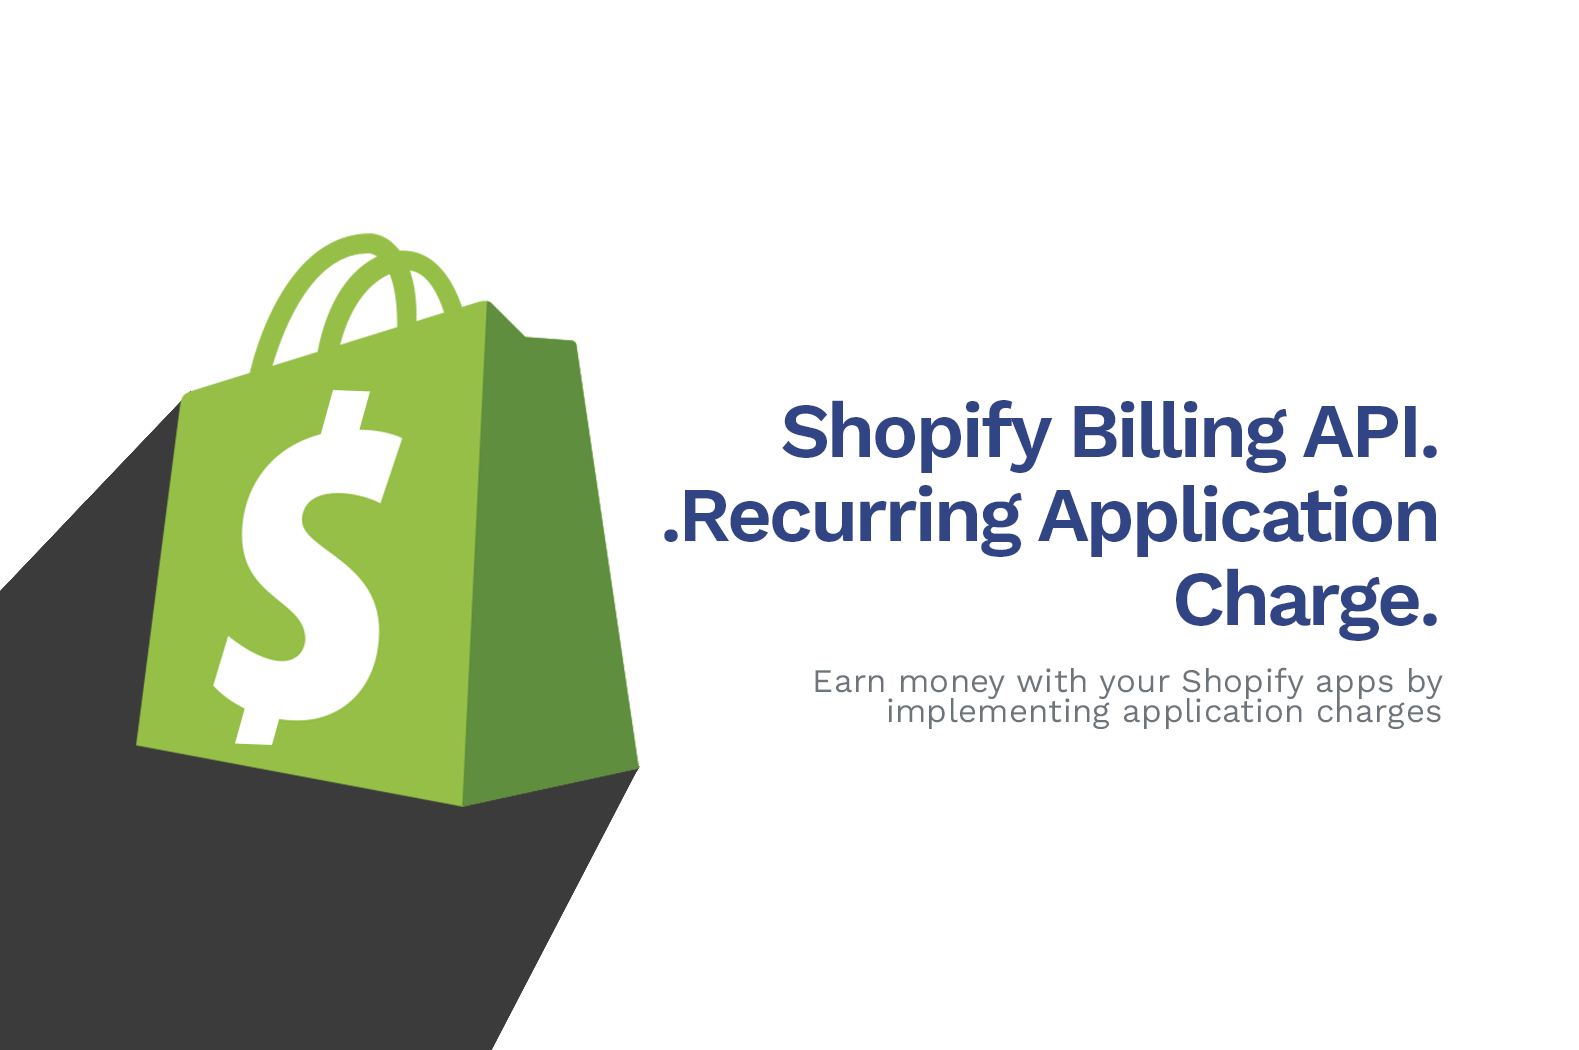 How To Implement Recurring Application Charge API To Shopify Apps